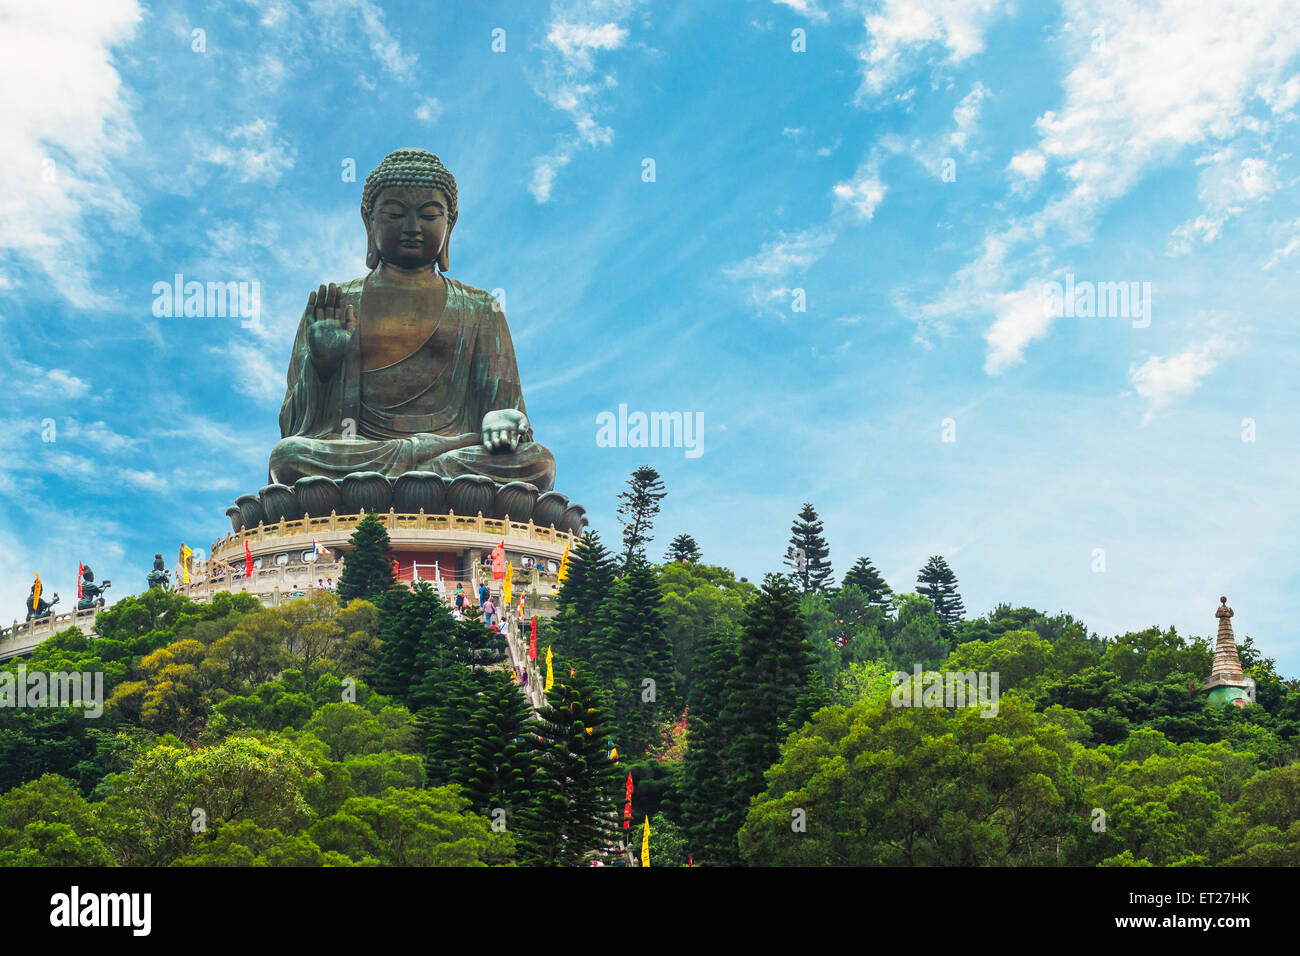 The enormous Tian Tan Buddha at Po Lin Monastery in Hong Kong. - Stock Image